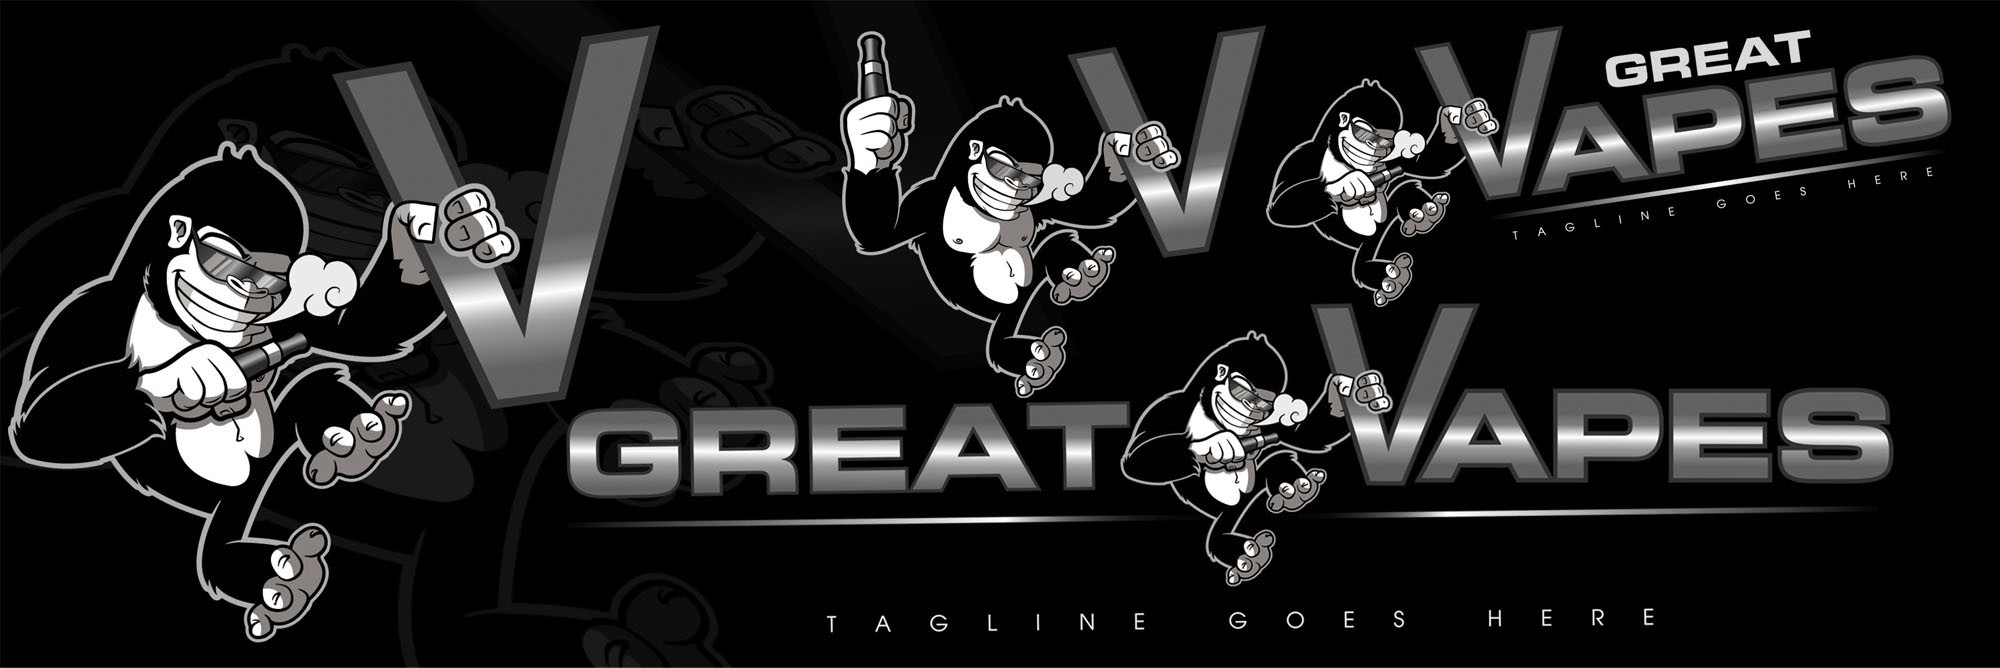 New logo wanted for GreatVapes